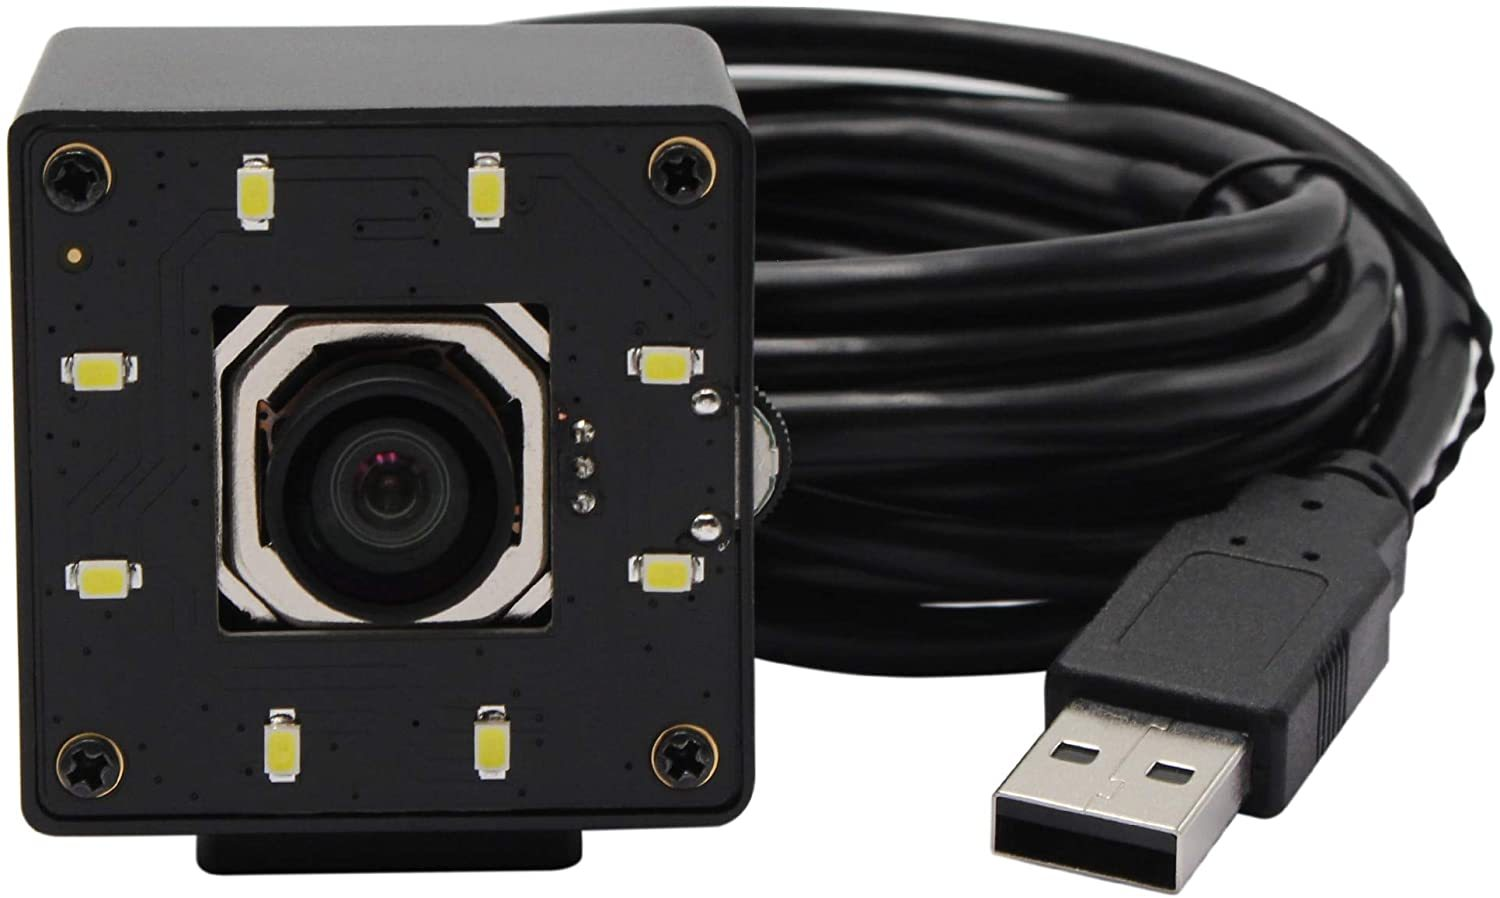 HD Webcam USB Webcam 4K 3840x2160 Autofocus Day and Night No Distortion CMOS IMX415 HD USB Camera with White LEDs